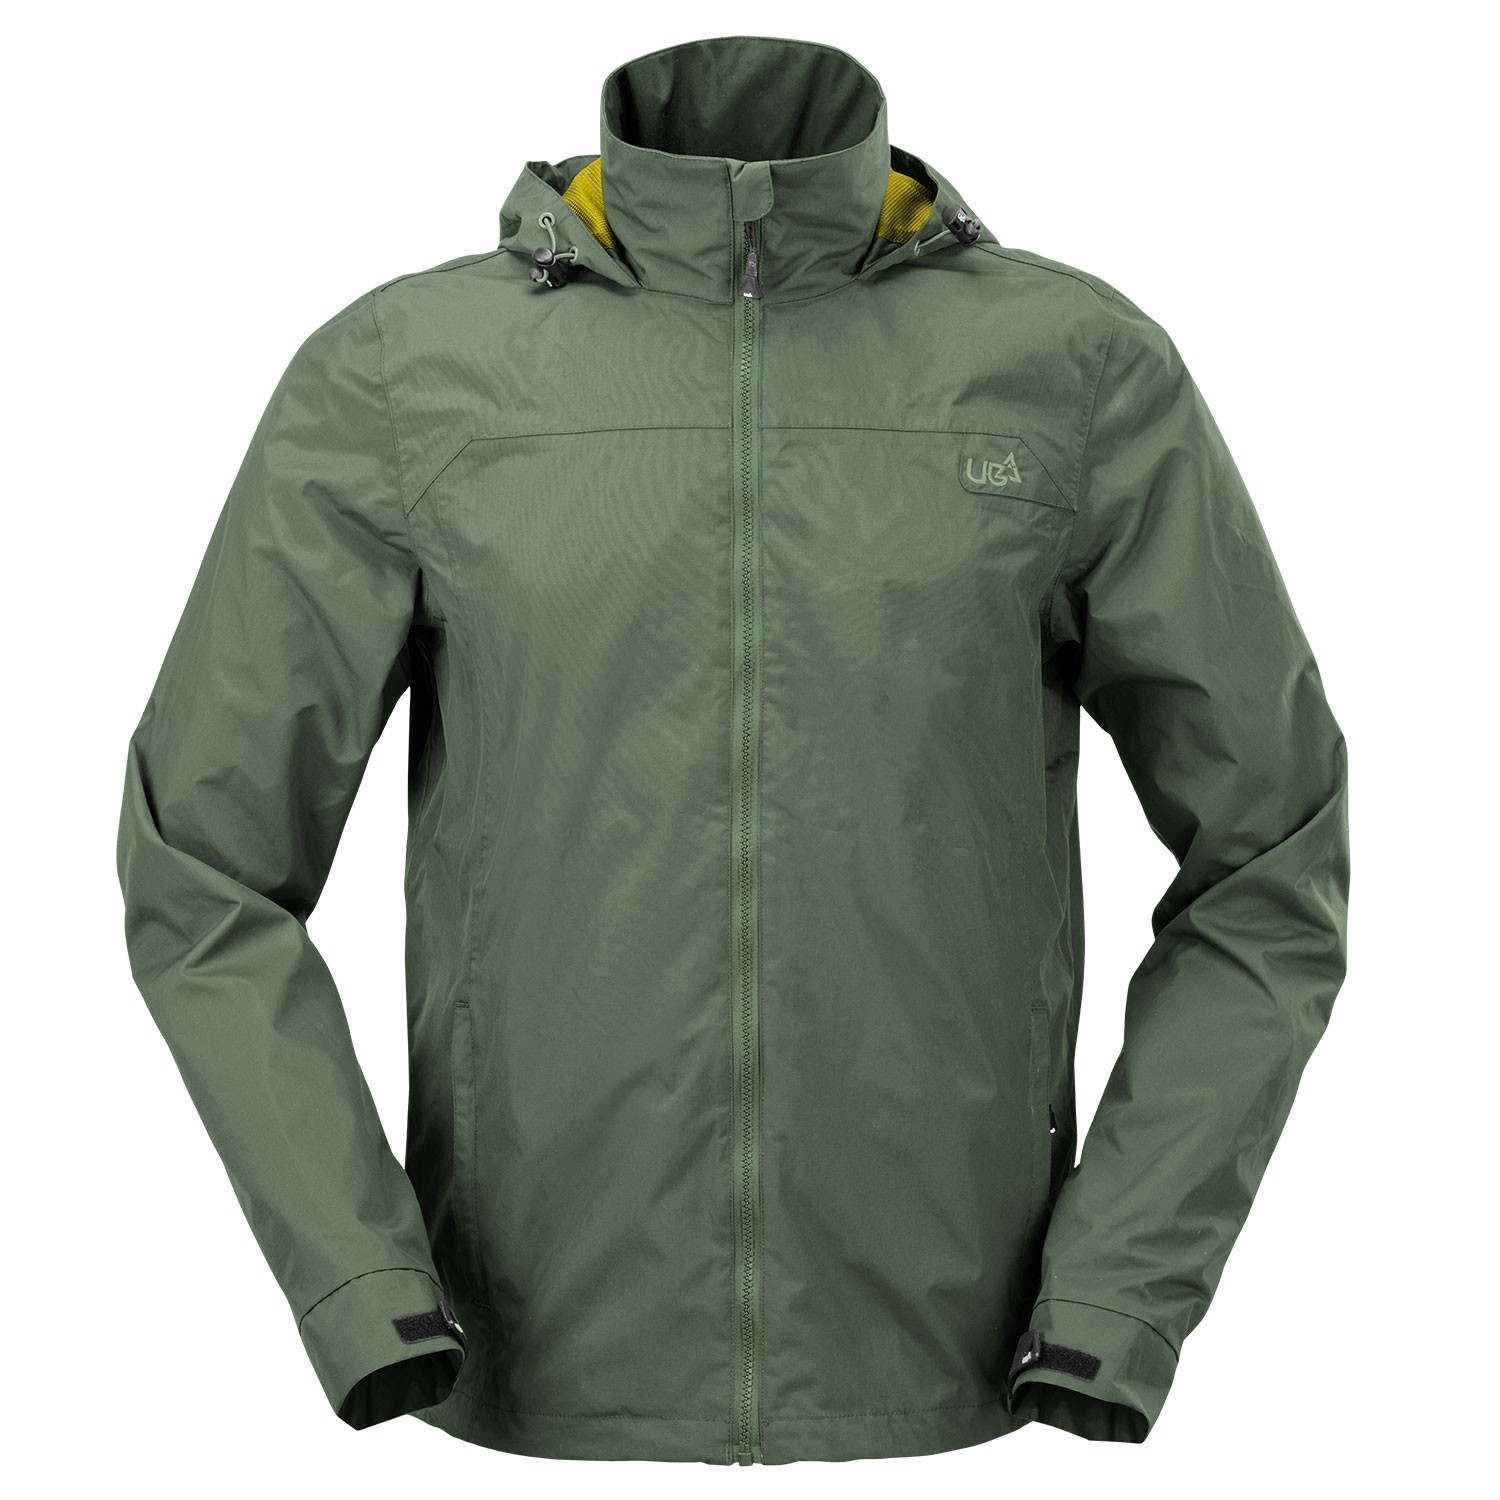 Mens Green Waterproof Jacket OB- Free Delivery Over £20 - Urban Beach